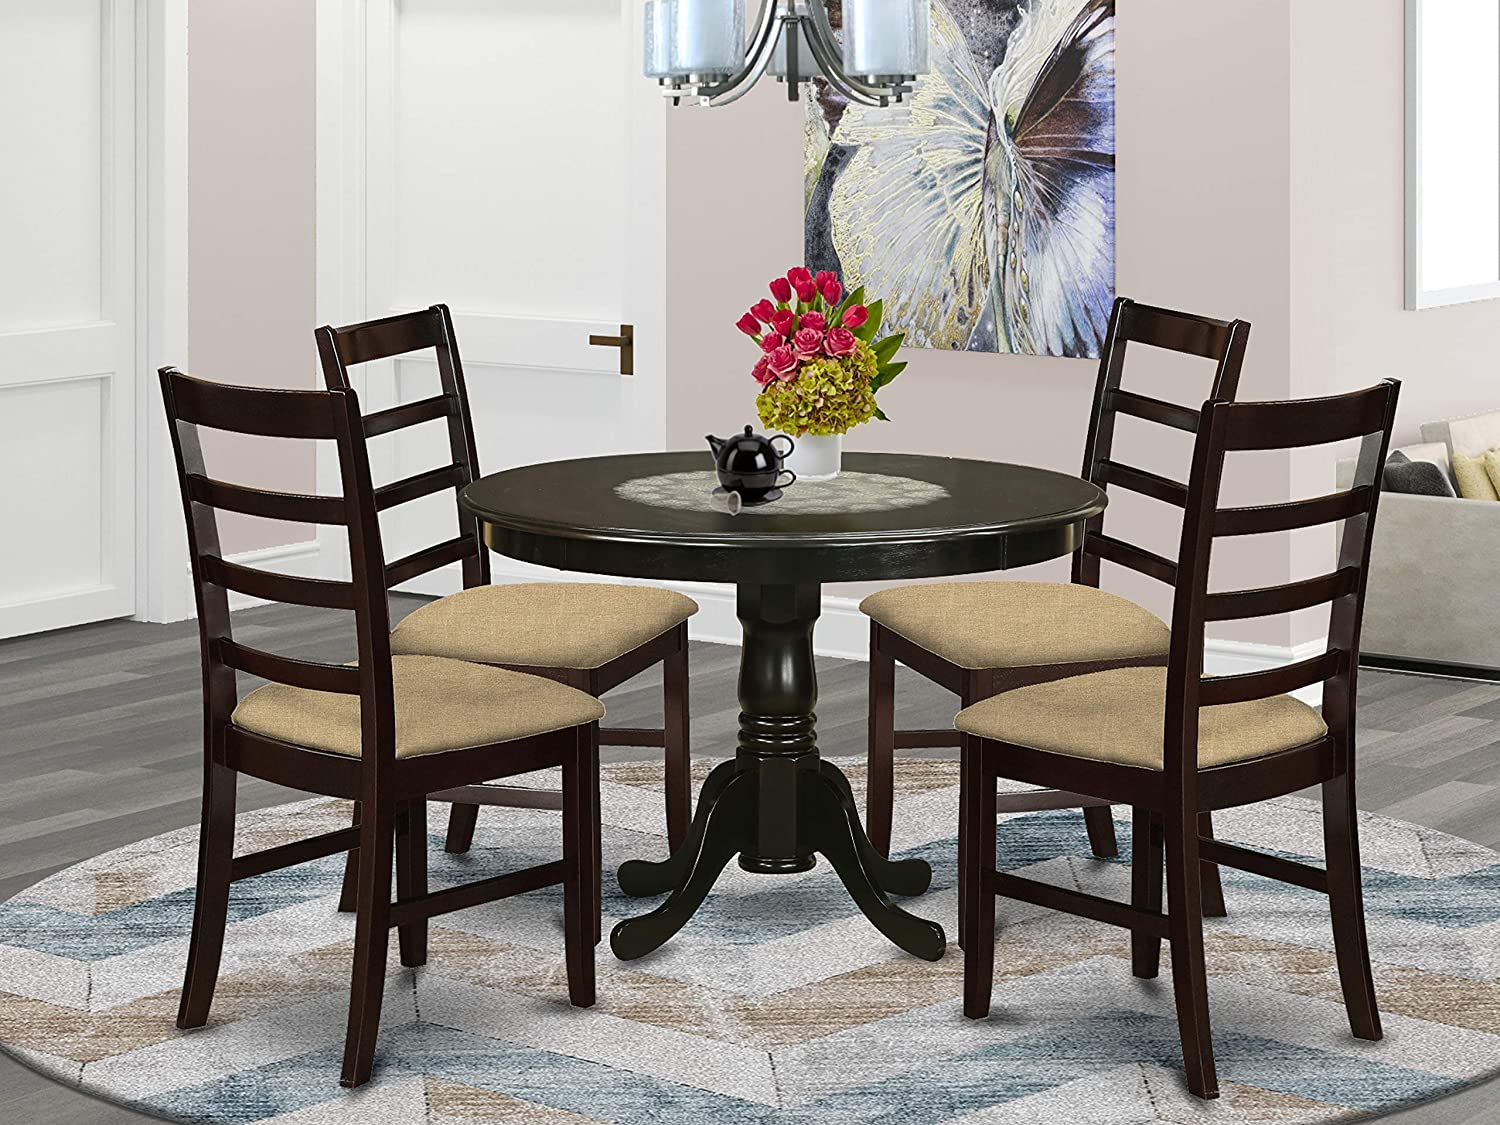 East West Furniture HLPF5-CAP-C Kitchen Dining Set 5 Pc - Linen Fabric Dining Chairs Seat – Cappuccino Finish Kitchen Dining Table and Frame